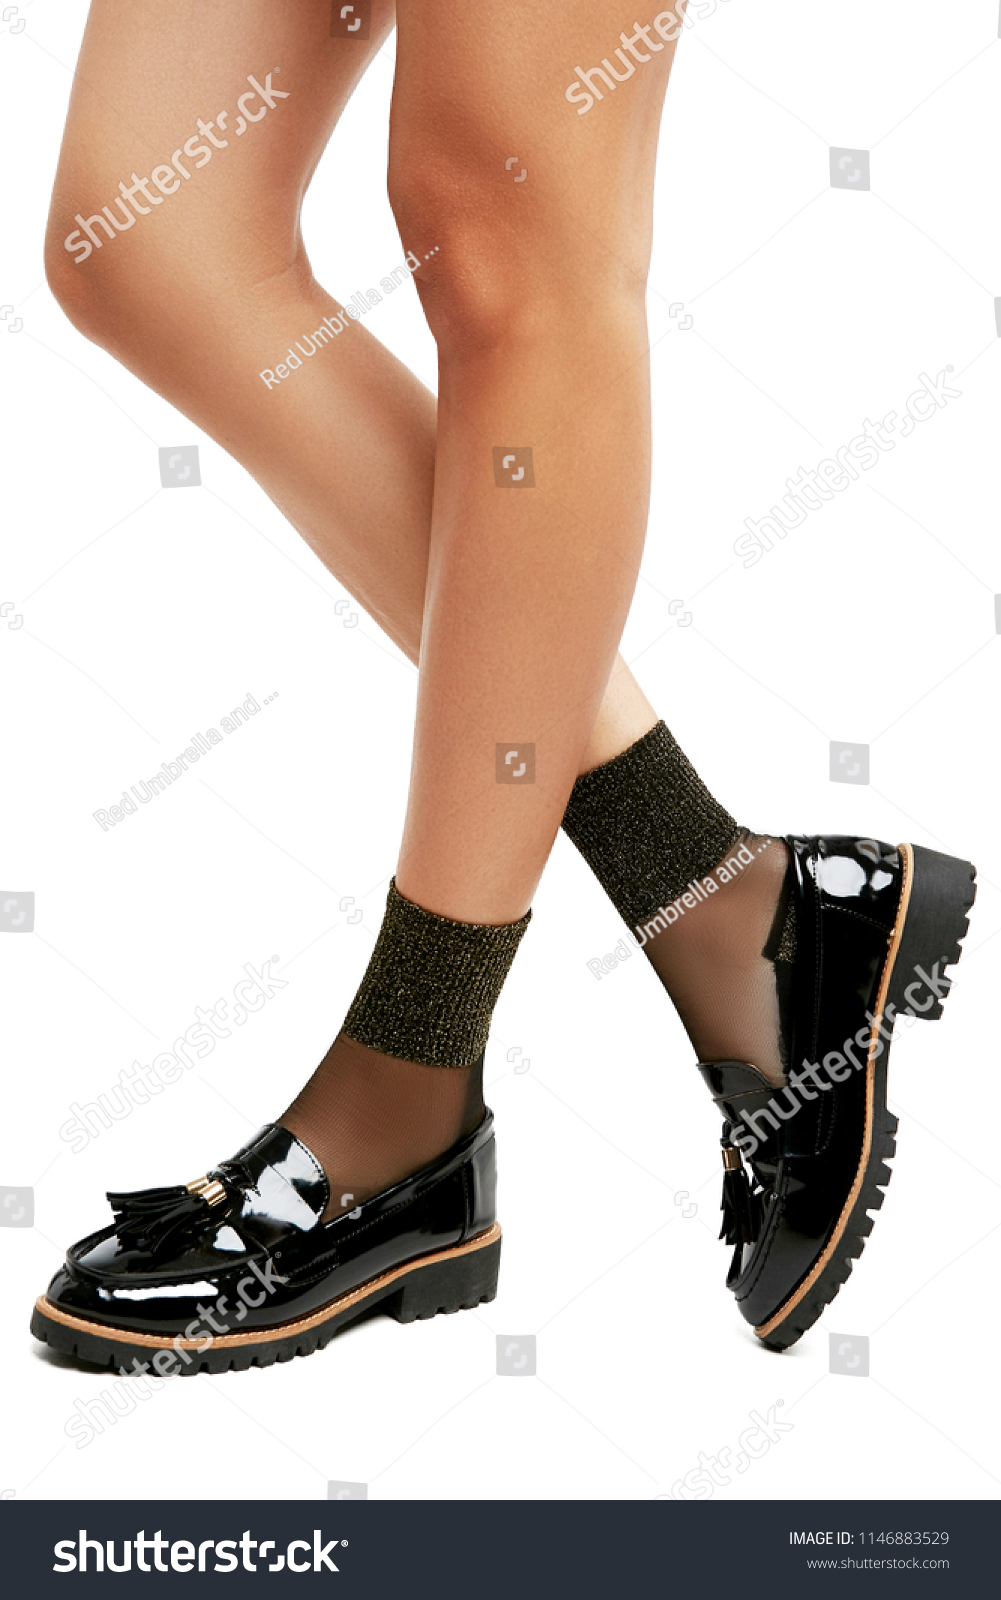 322e27ef1829 Cropped side view of lean woman s legs in sheer ankle high socks with  glitter metallic cuffs